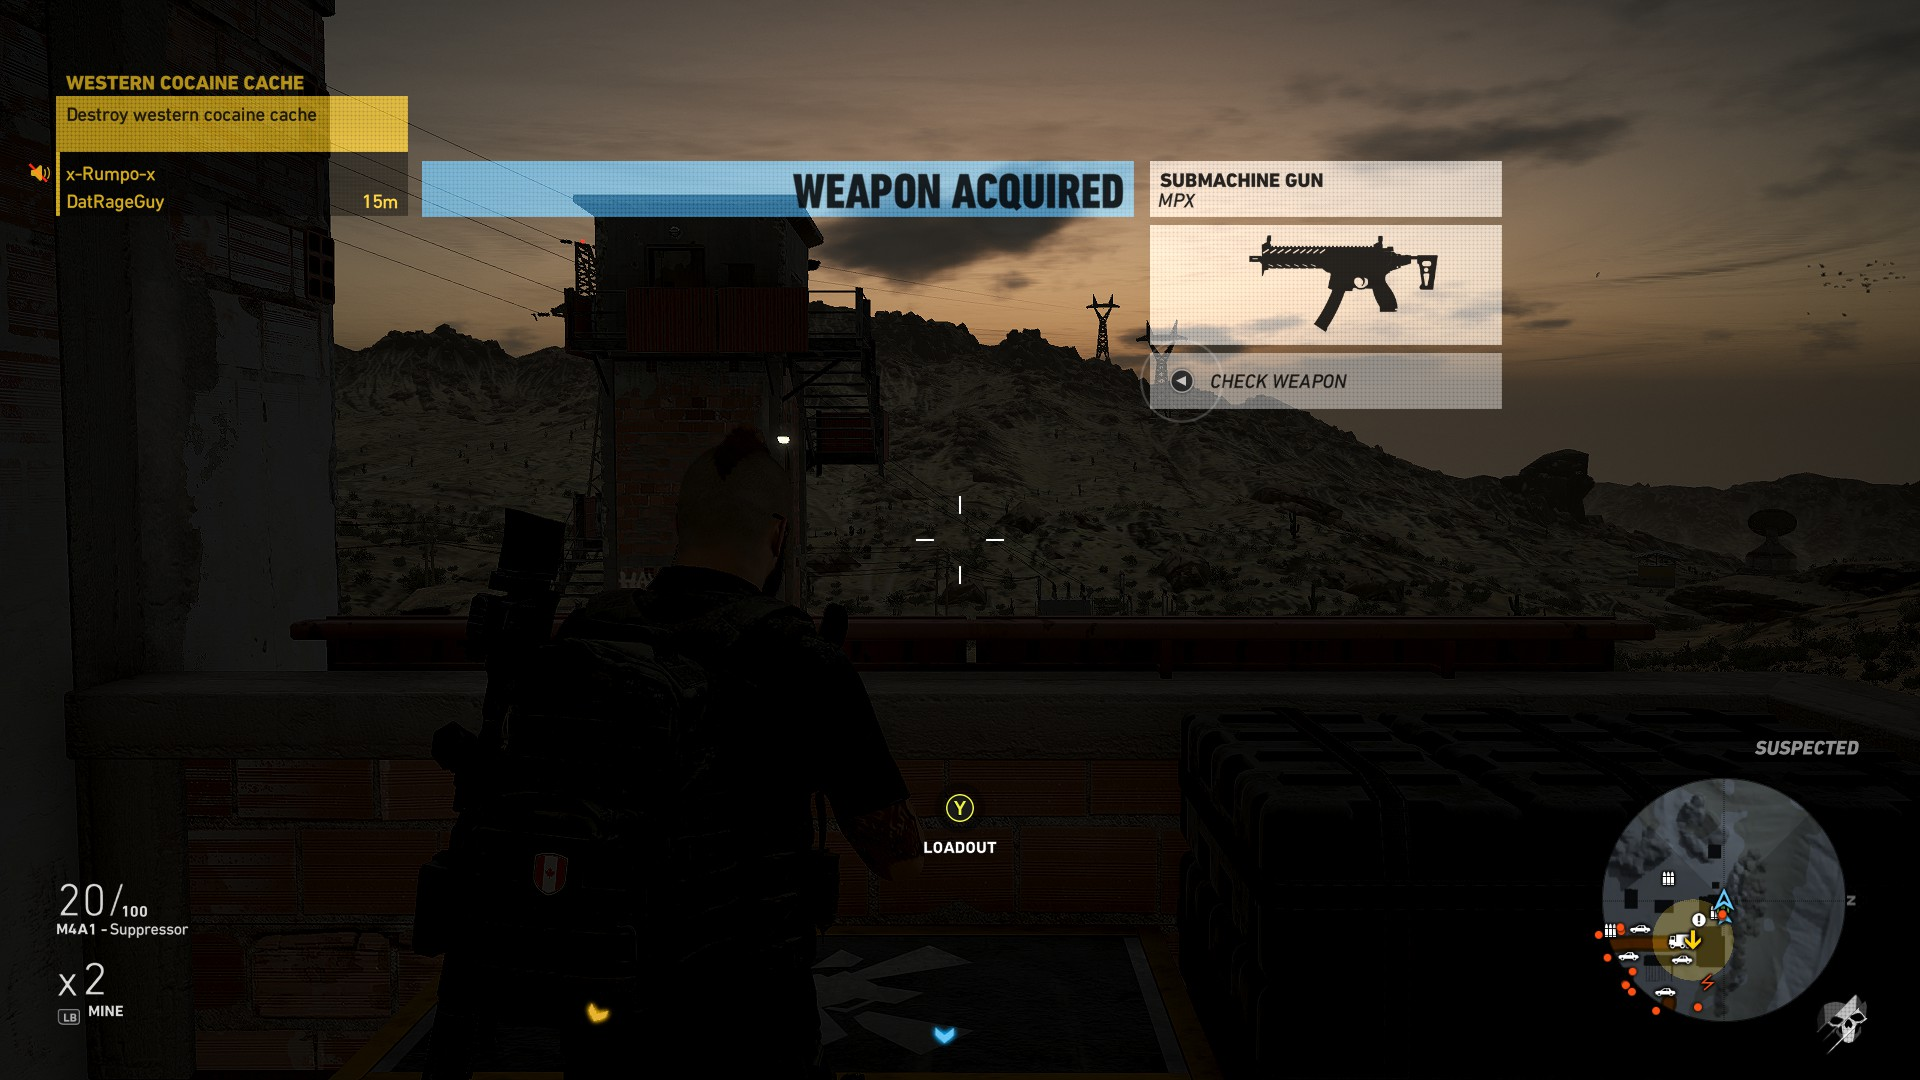 The MPX Submachine Gun - How to get the MPX in Ghost Recon Wildlands